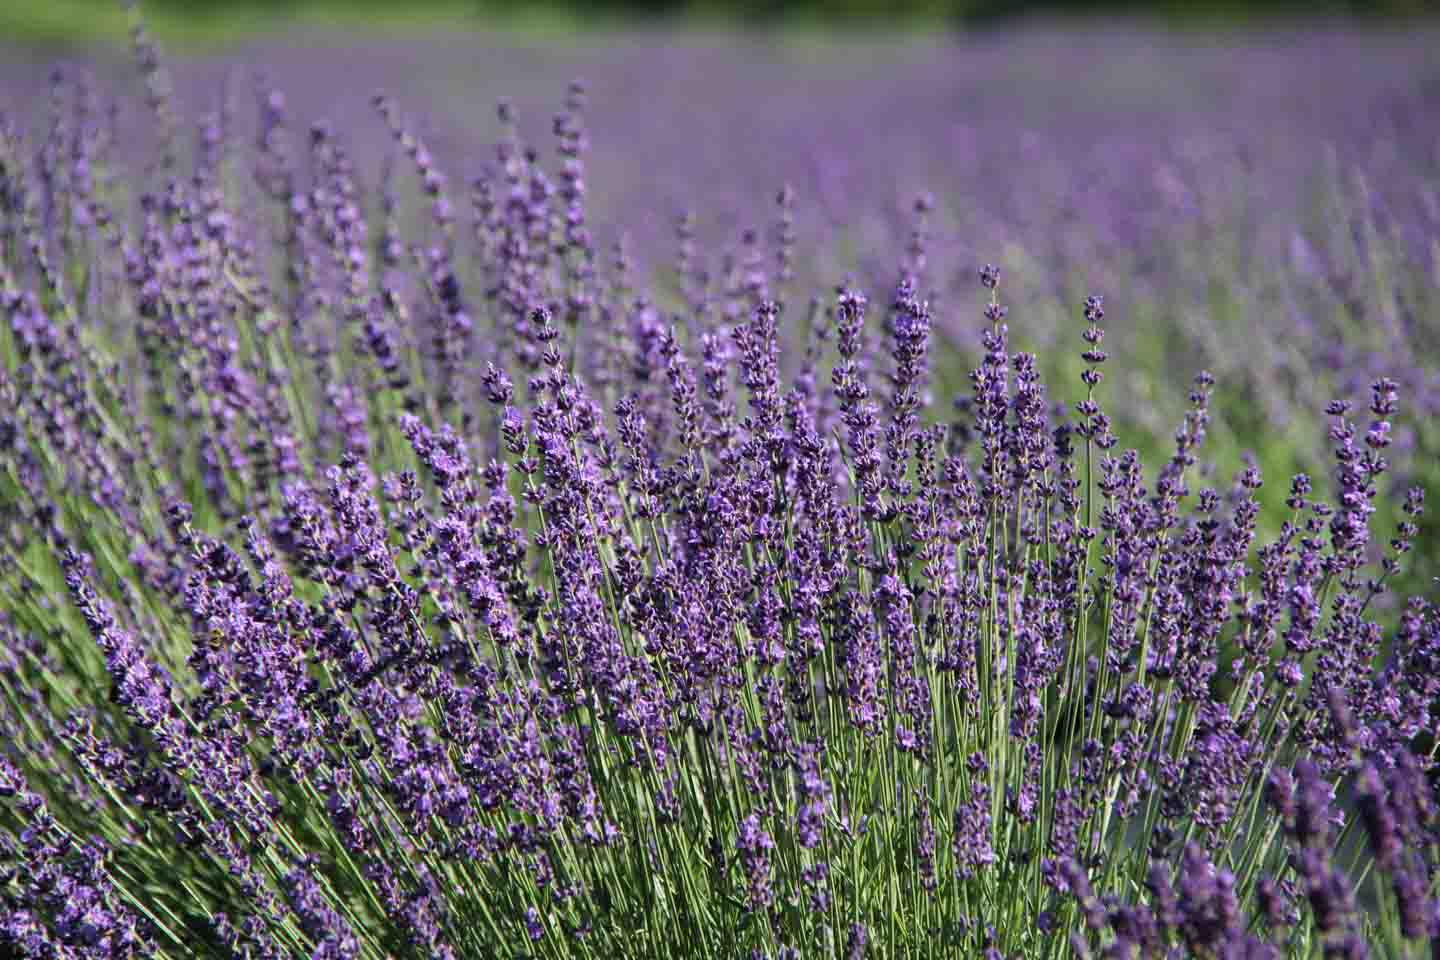 Lavender field at Fragrant Isle Lavender Farm and Shop on